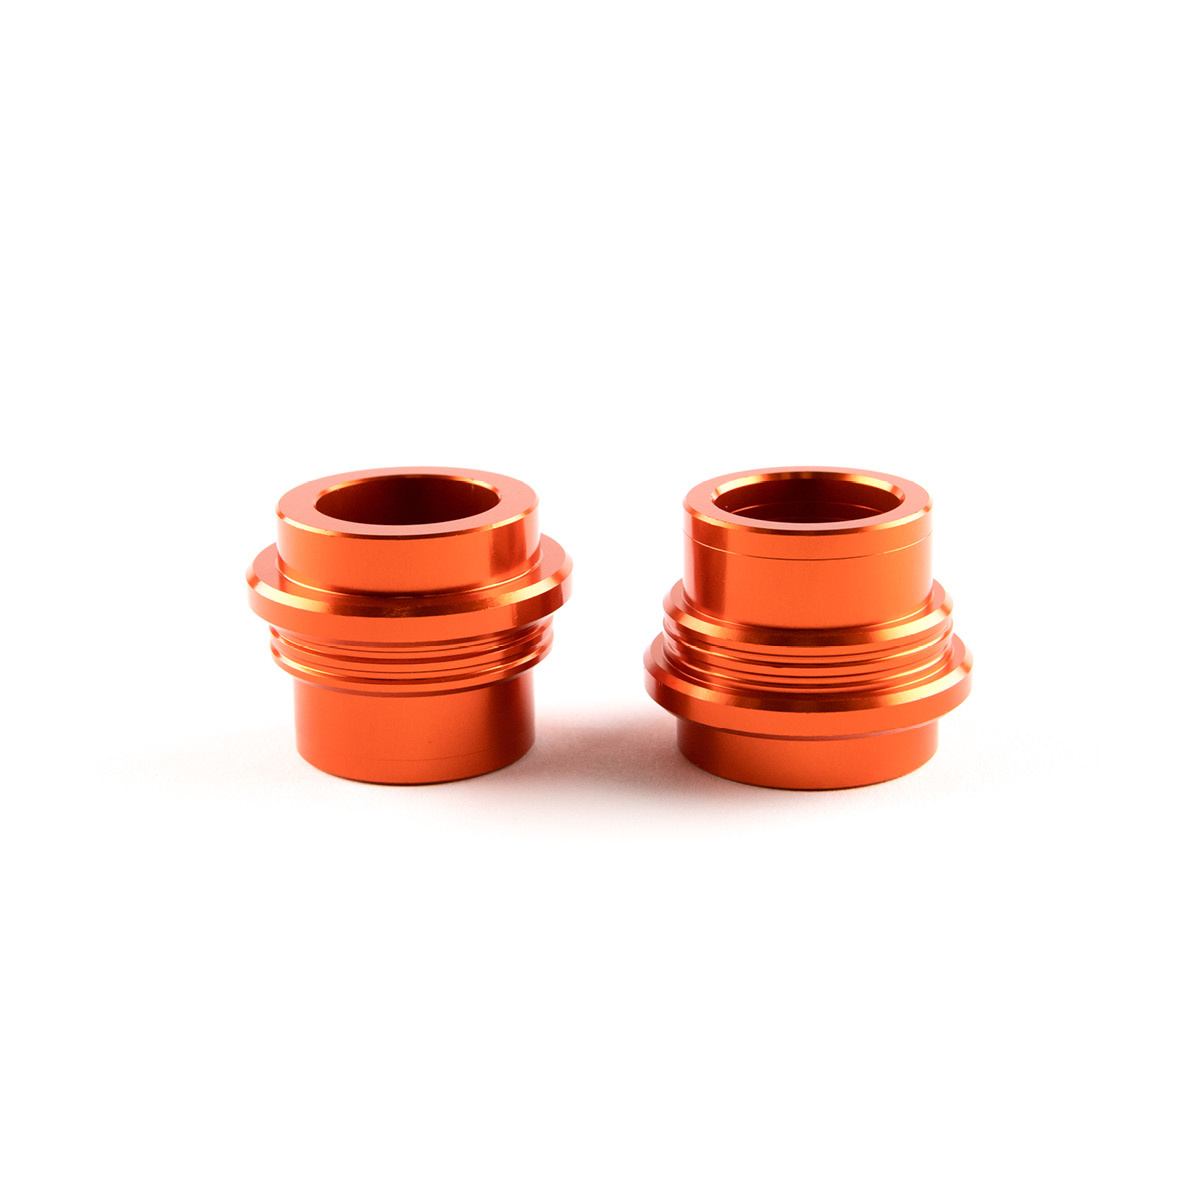 AWORKX wheel spacer front